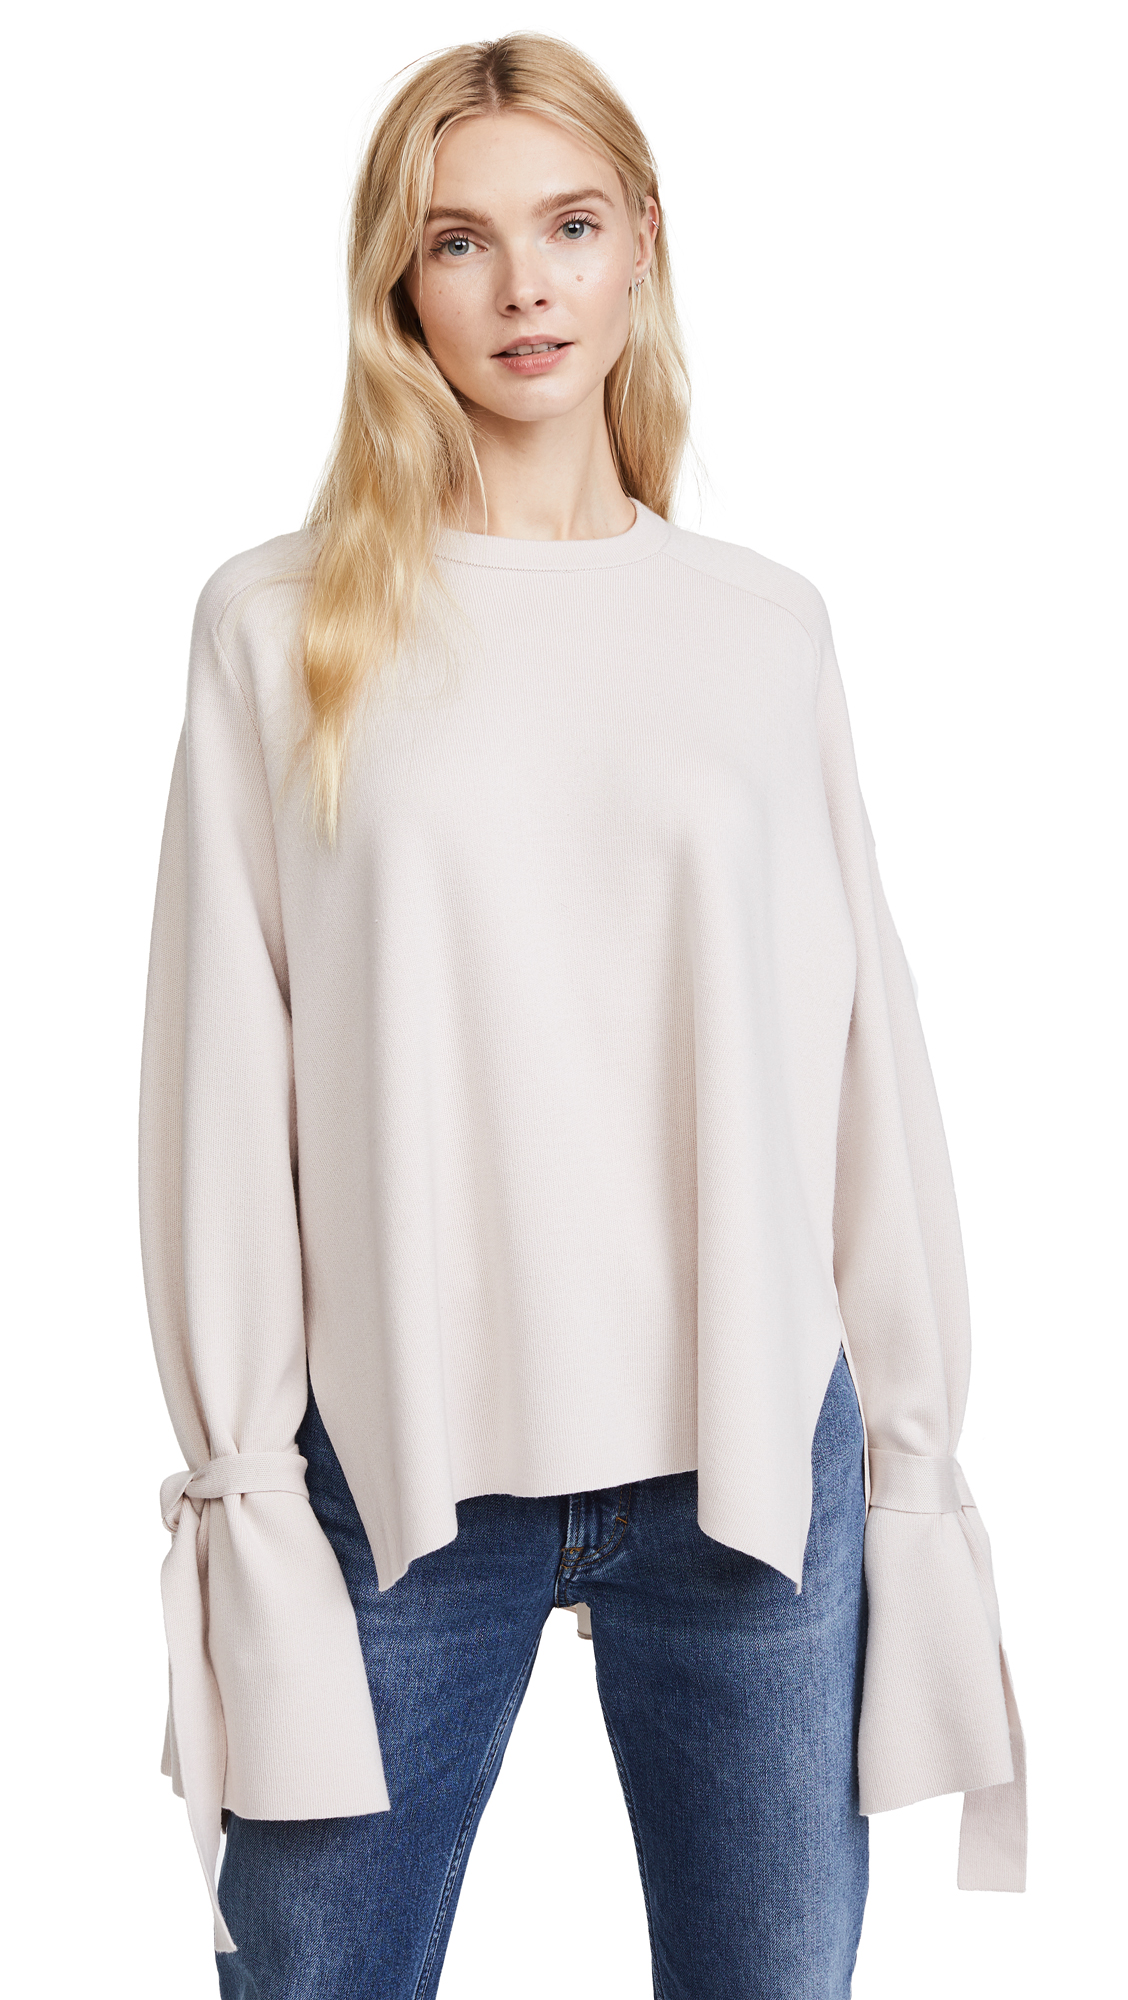 Tibi Flare Sleeve Sweater - Blush